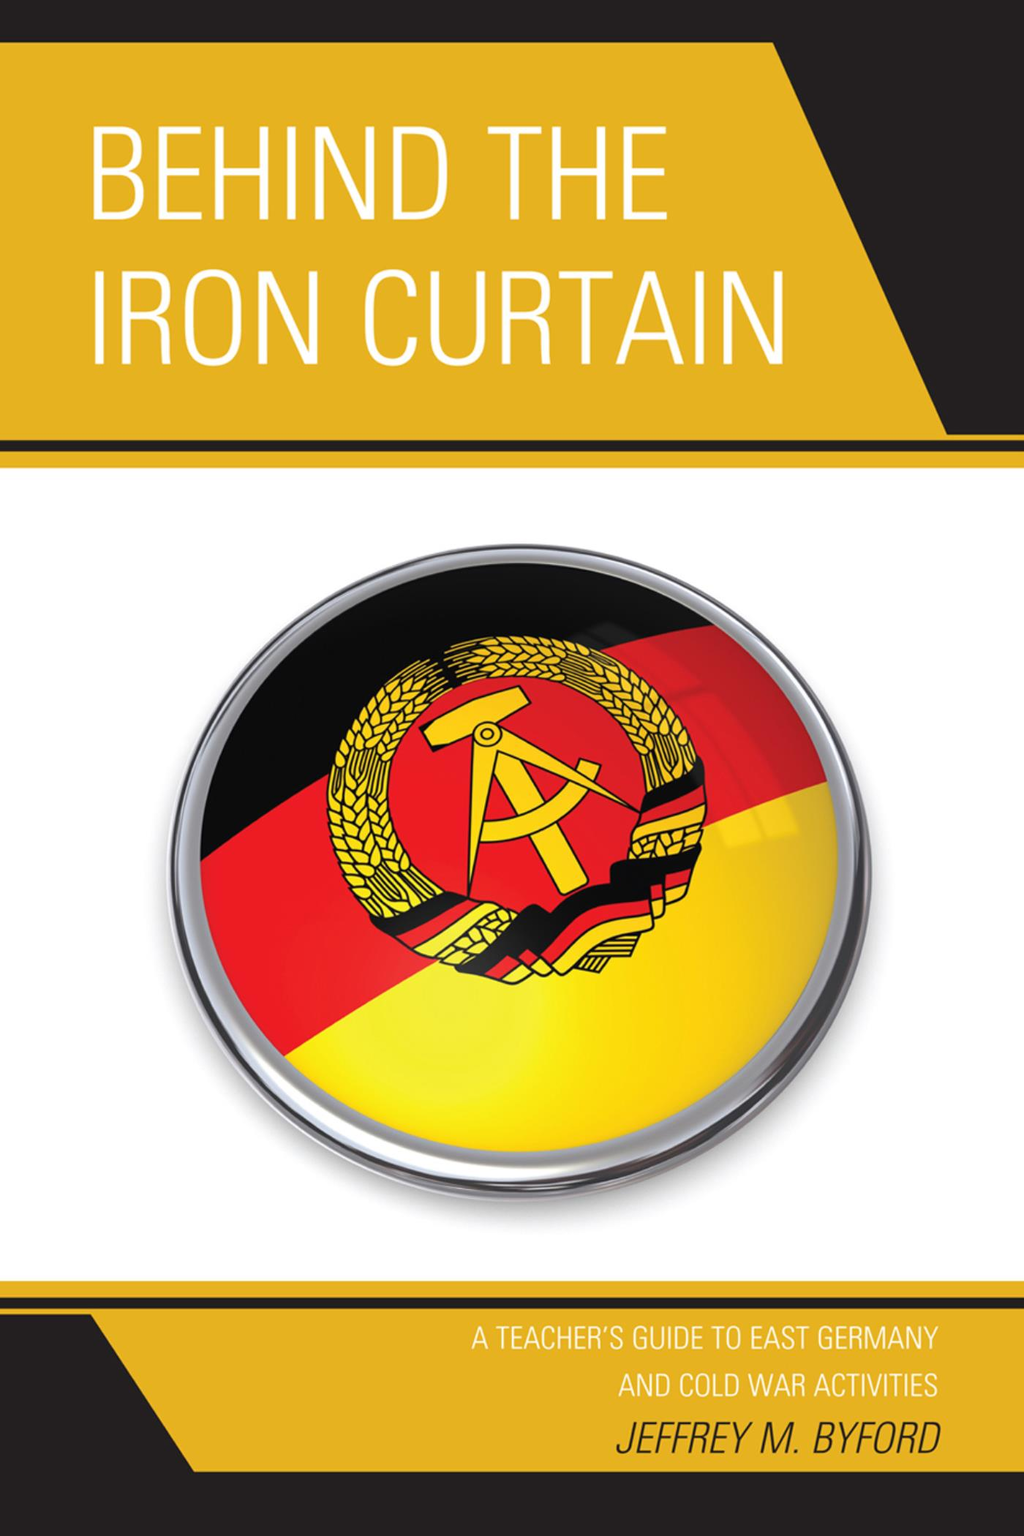 Behind the Iron Curtain A Teacher's Guide to East Germany and Cold War Activities